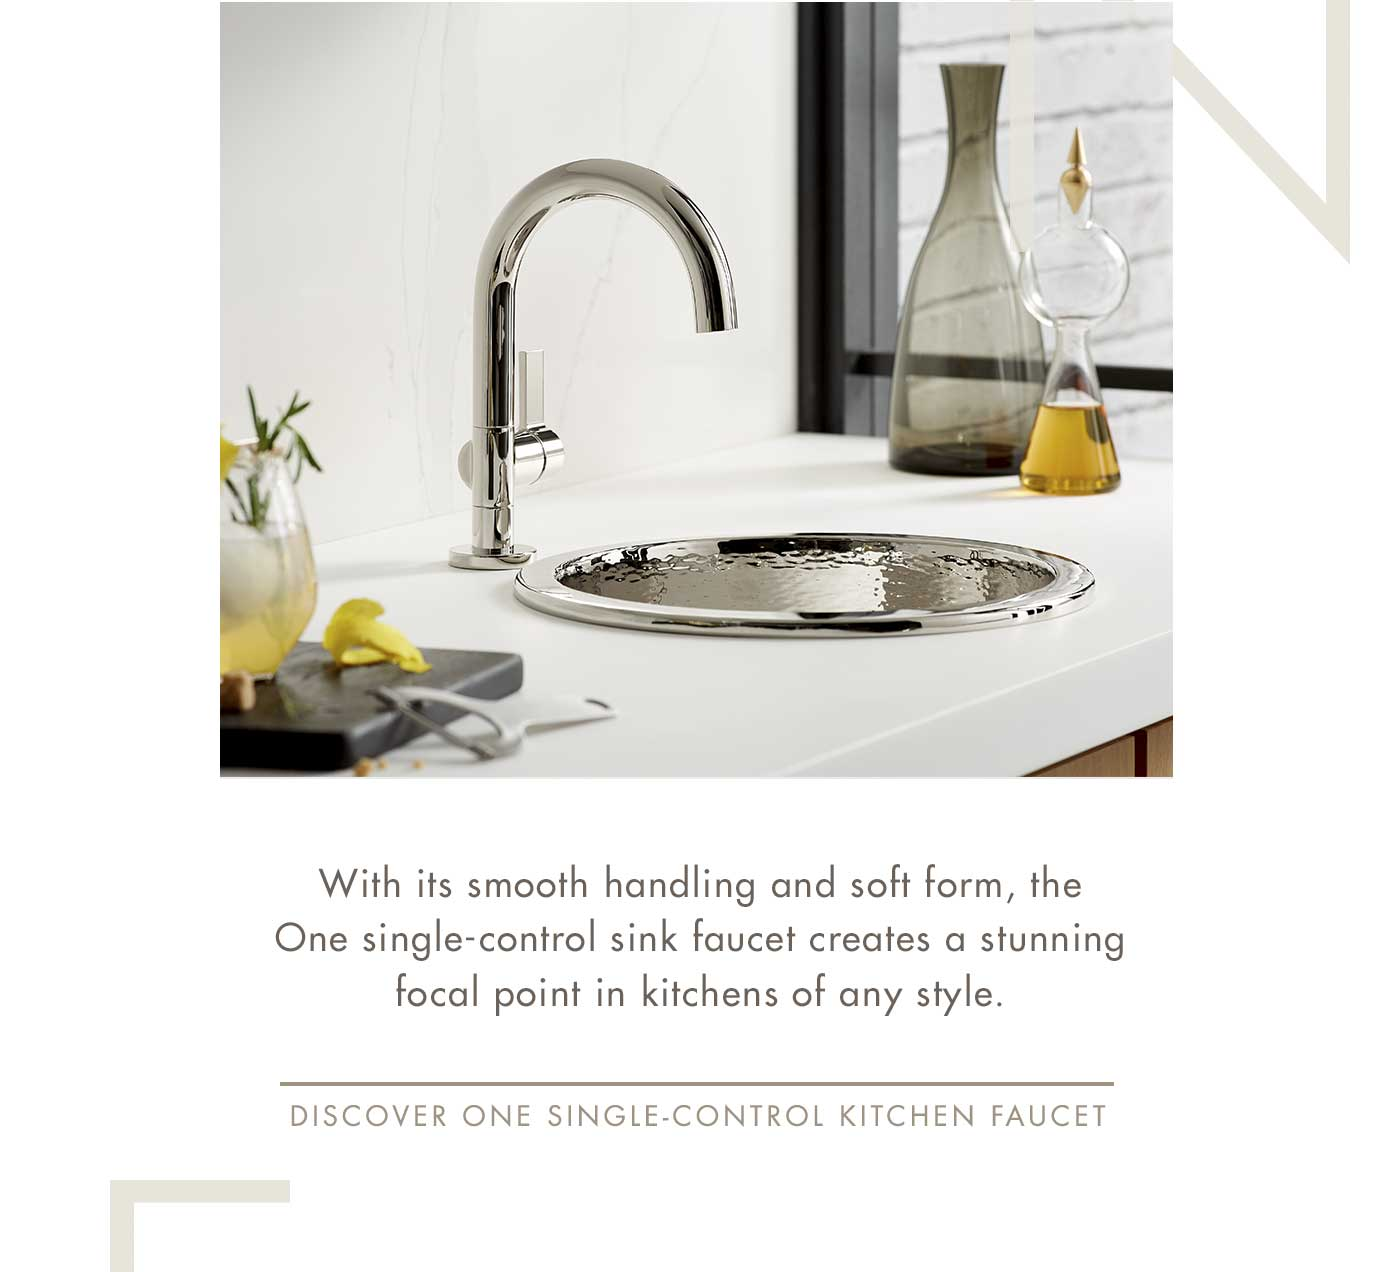 With its smooth handling and soft form, the One single-control sink faucet creates a stunning focal point in kitchens of any style. | Discover One SINGLE-CONTROL Kitchen Faucet